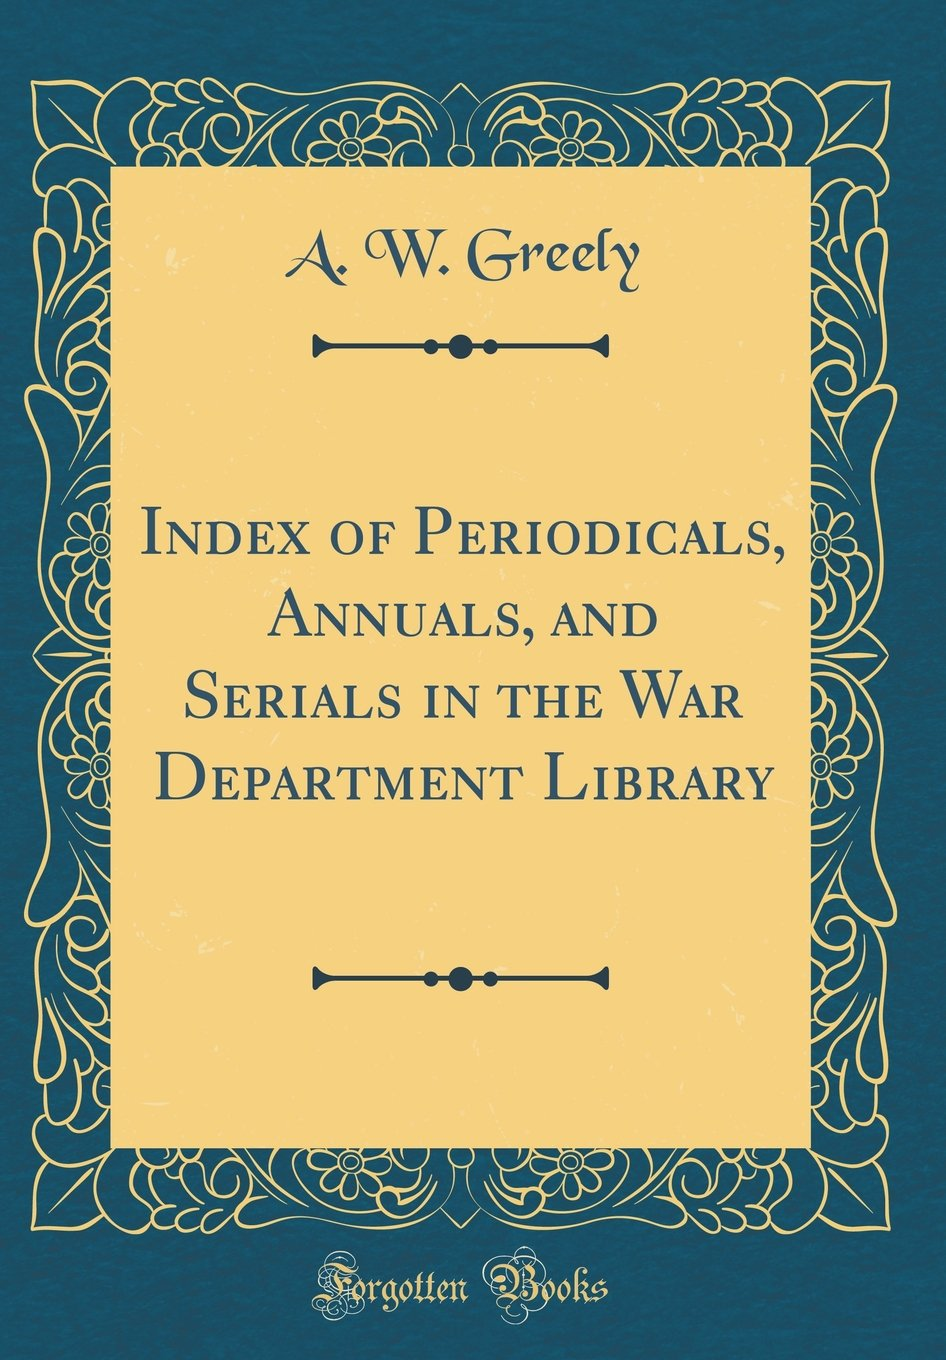 Index of Periodicals, Annuals, and Serials in the War